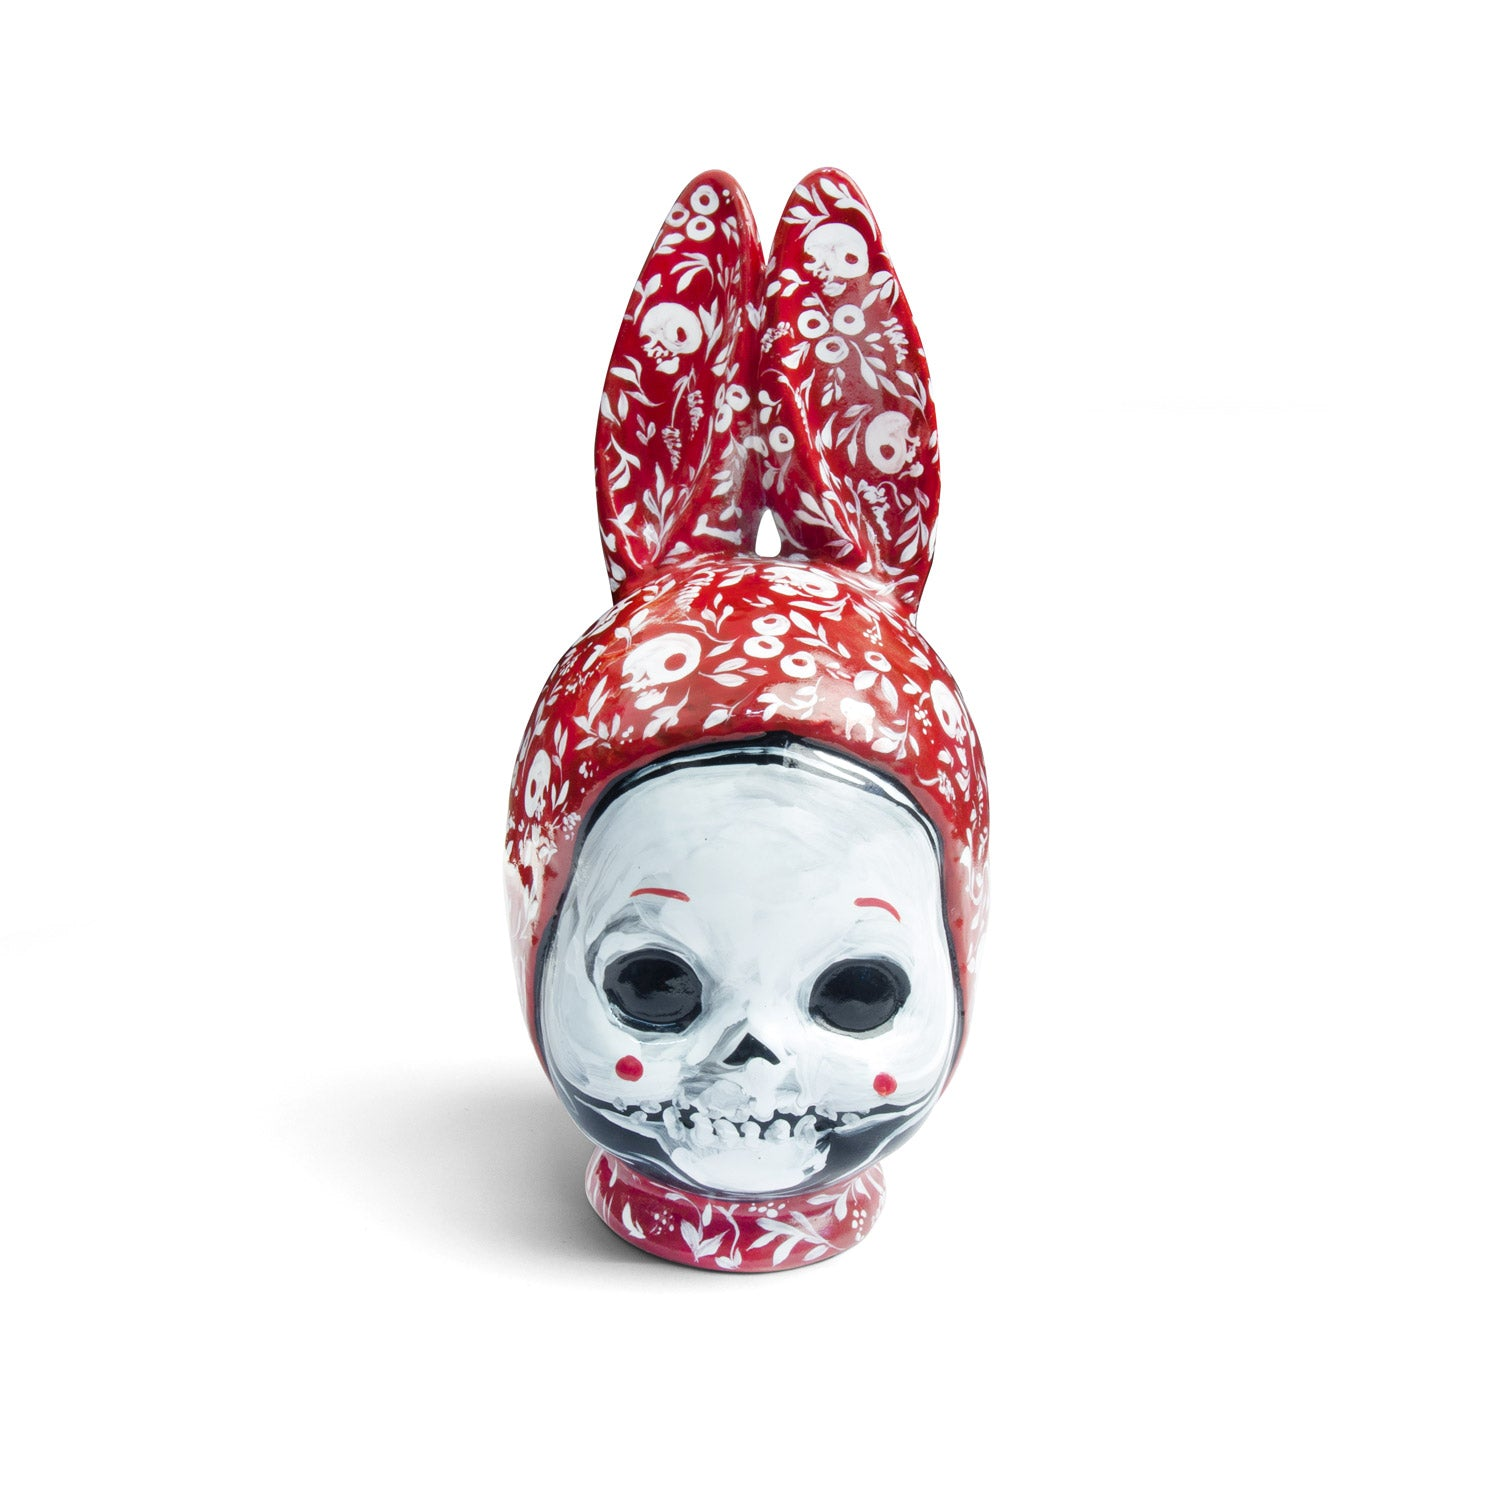 Ceramic kewpie head - red